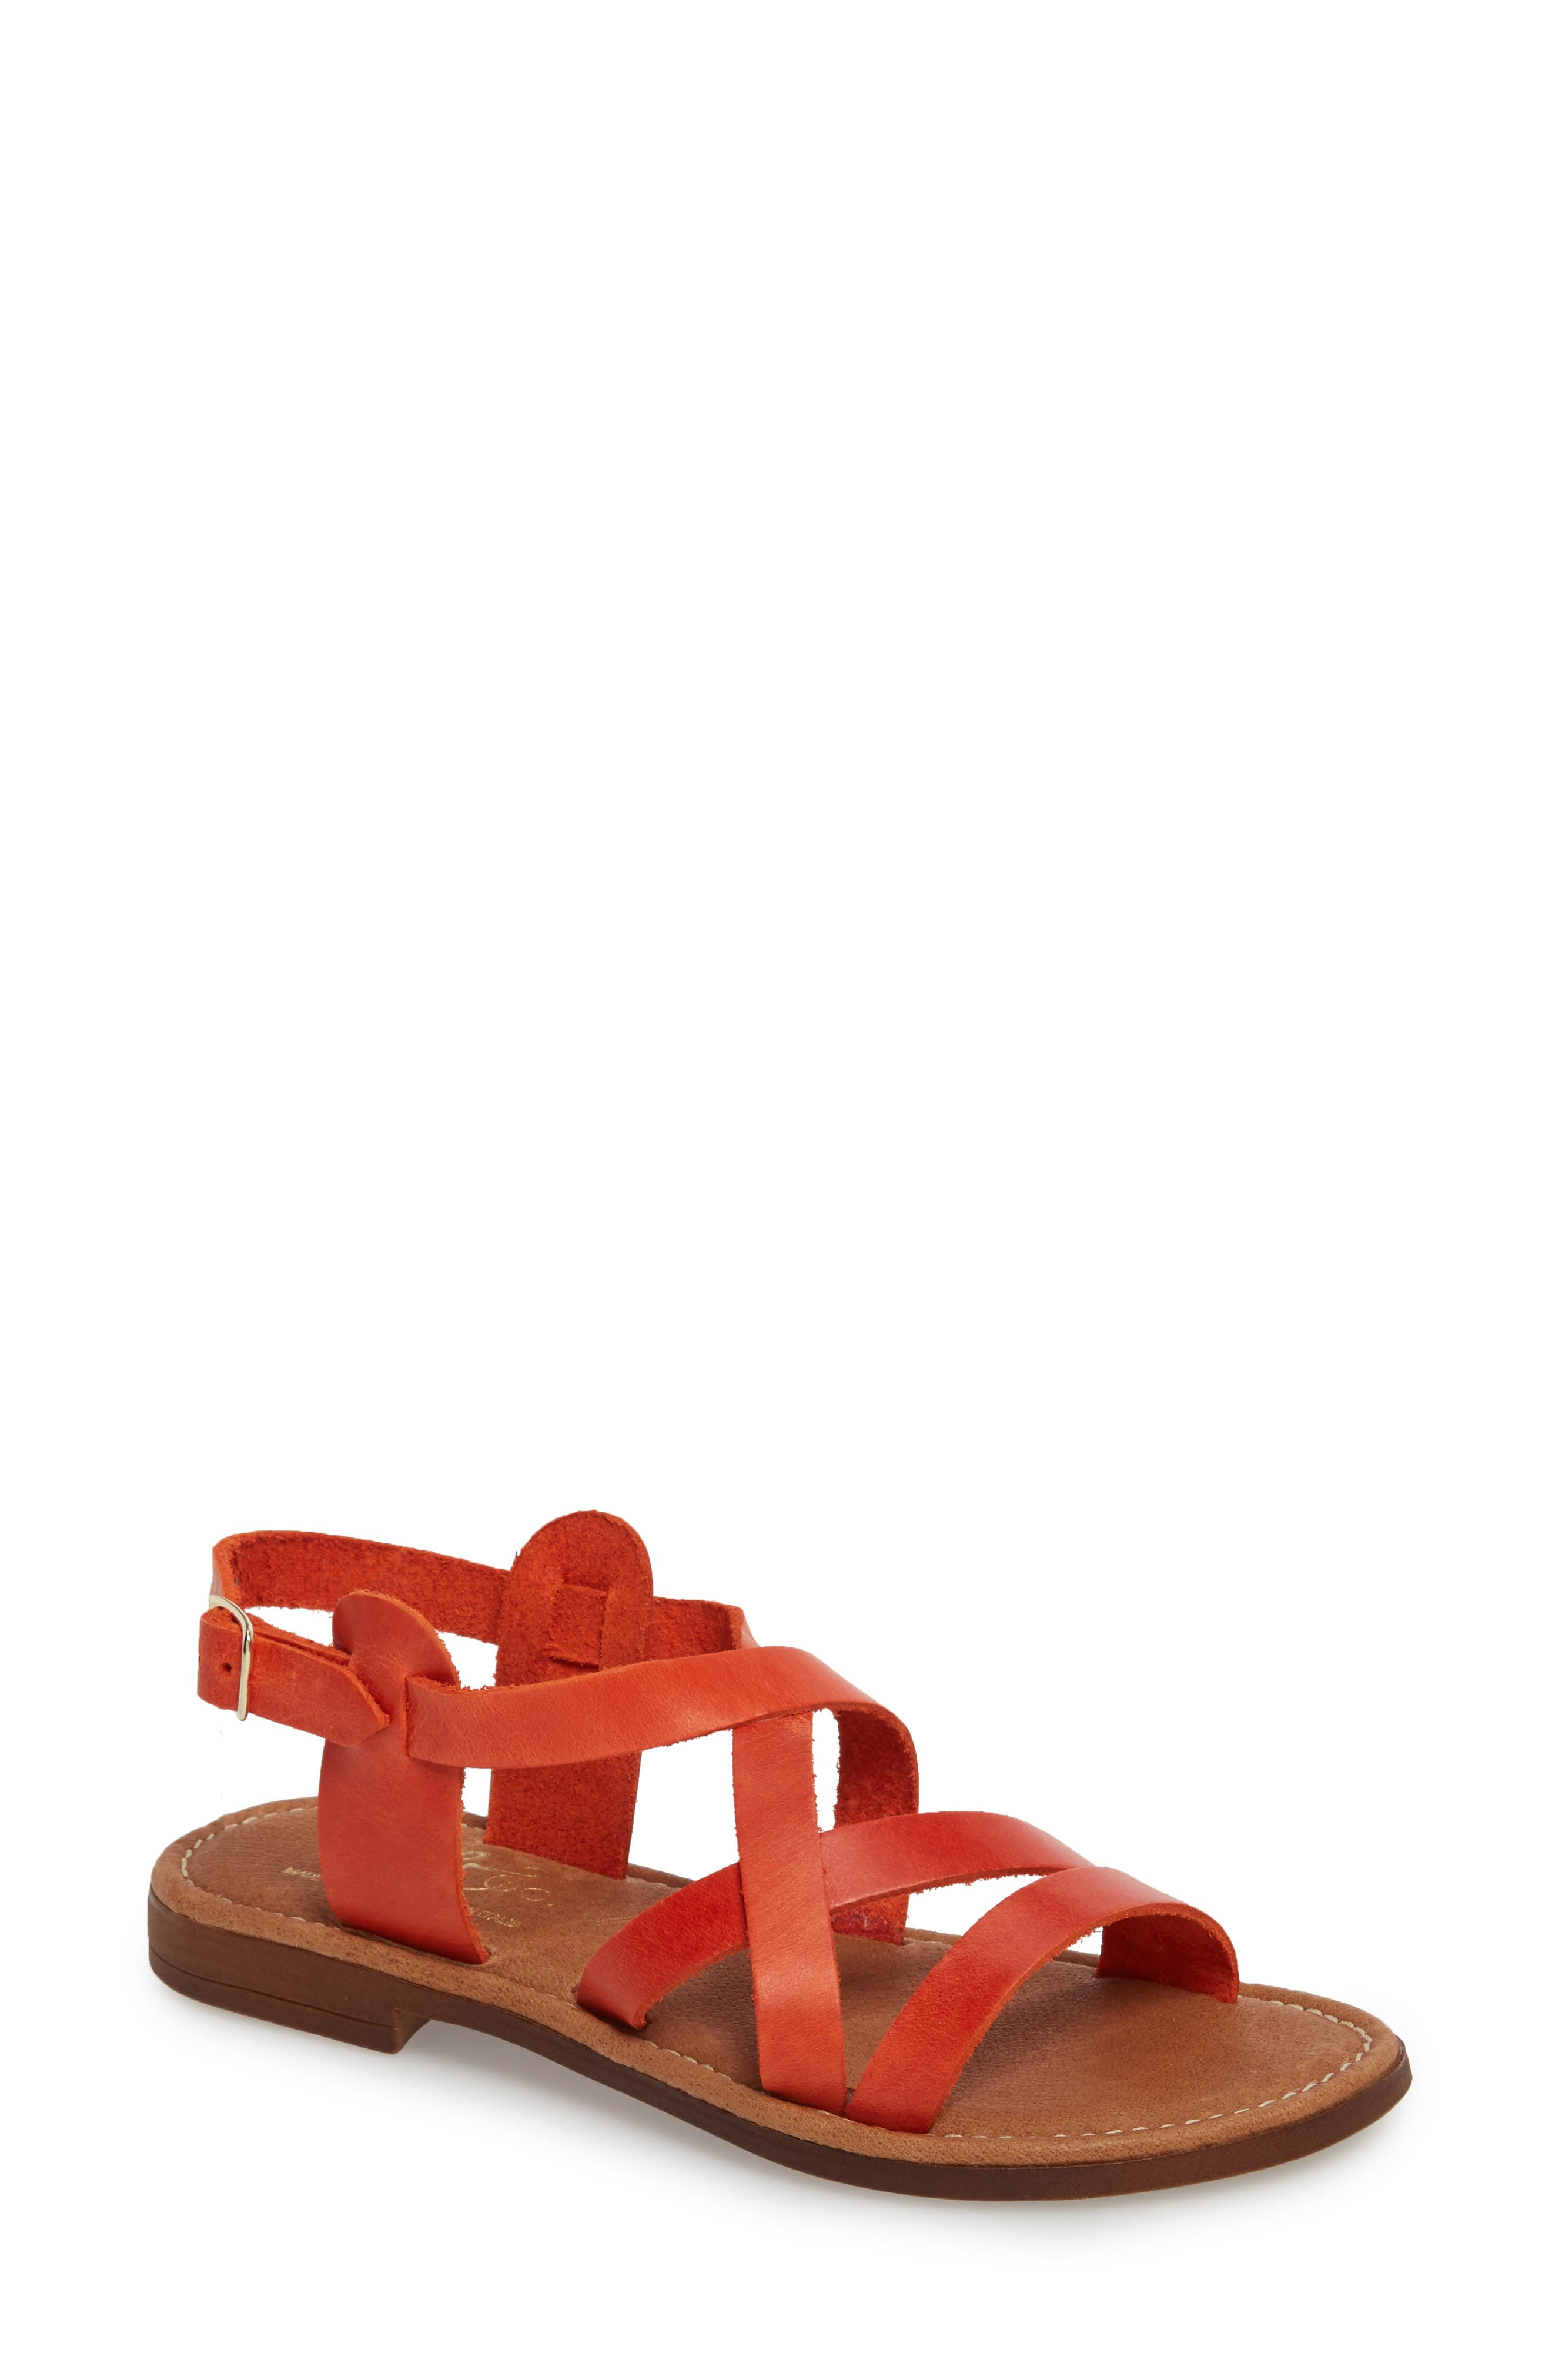 Ionna Sandal,                         Main,                         color, Tangerine Leather